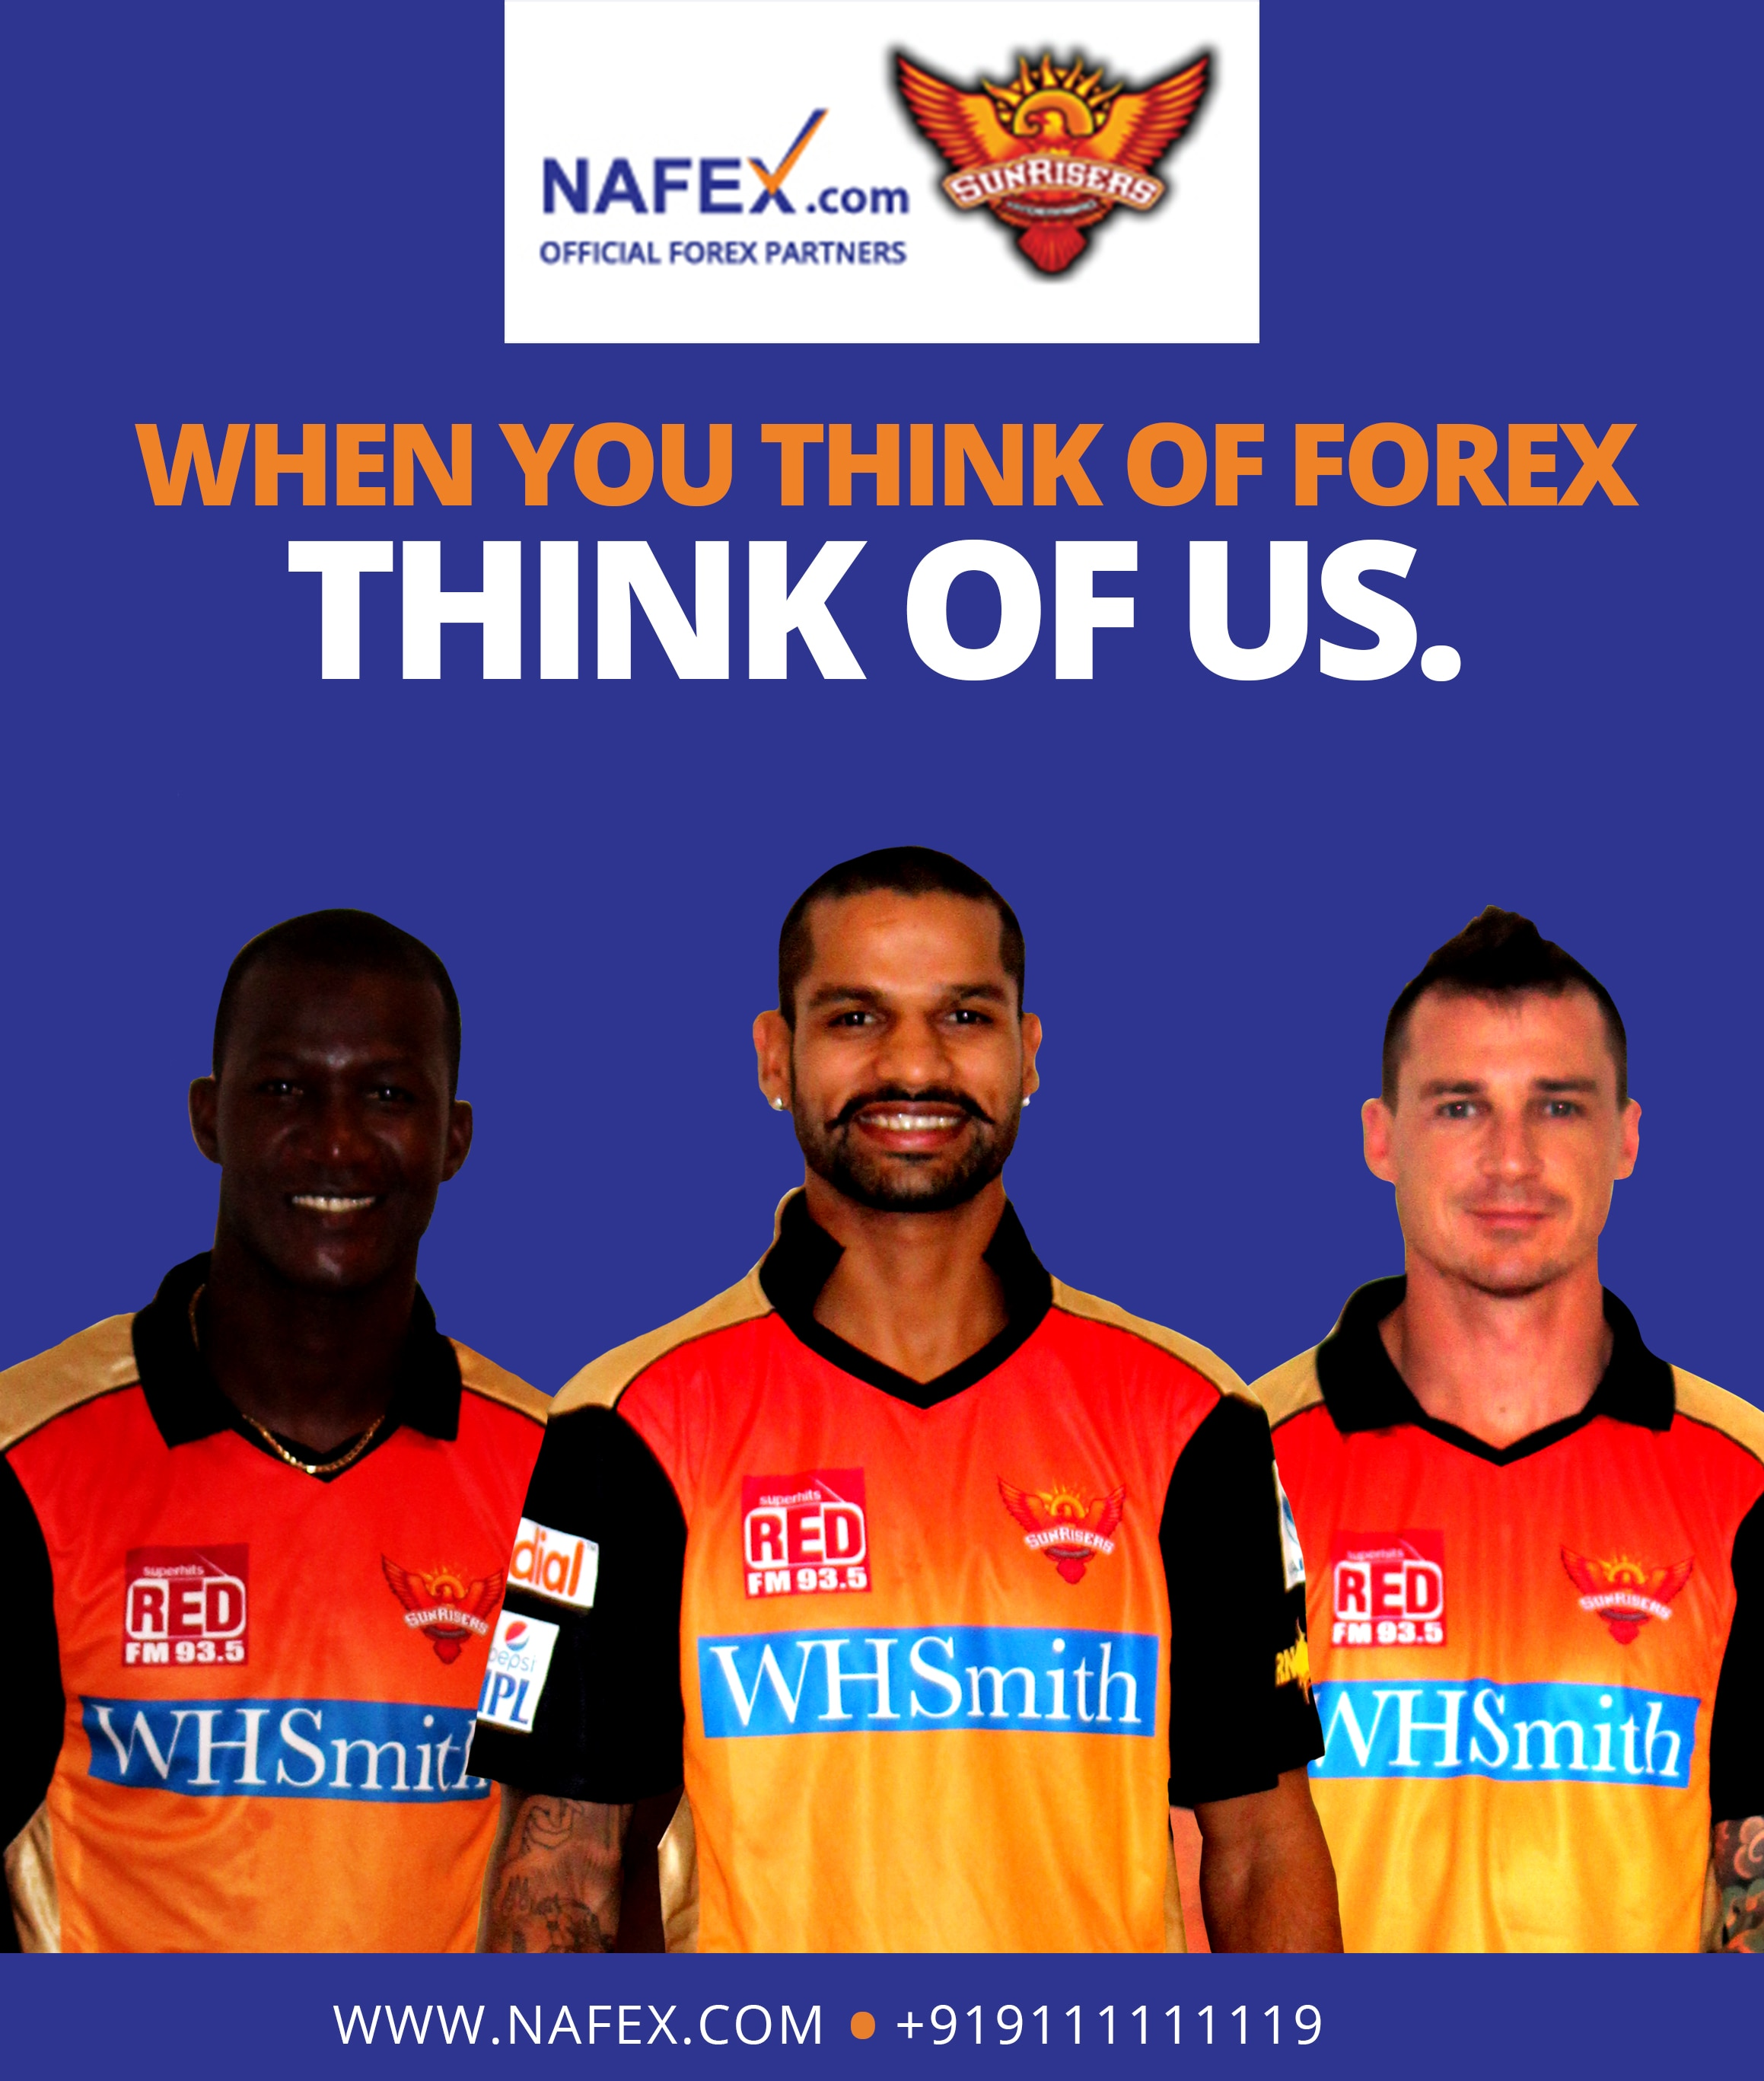 Nafex - Shanti Kunj Foreign Currency Exchange Dealers Agents Shanti Kunj , Online Travellers Cheque & Forex Prepaid Card